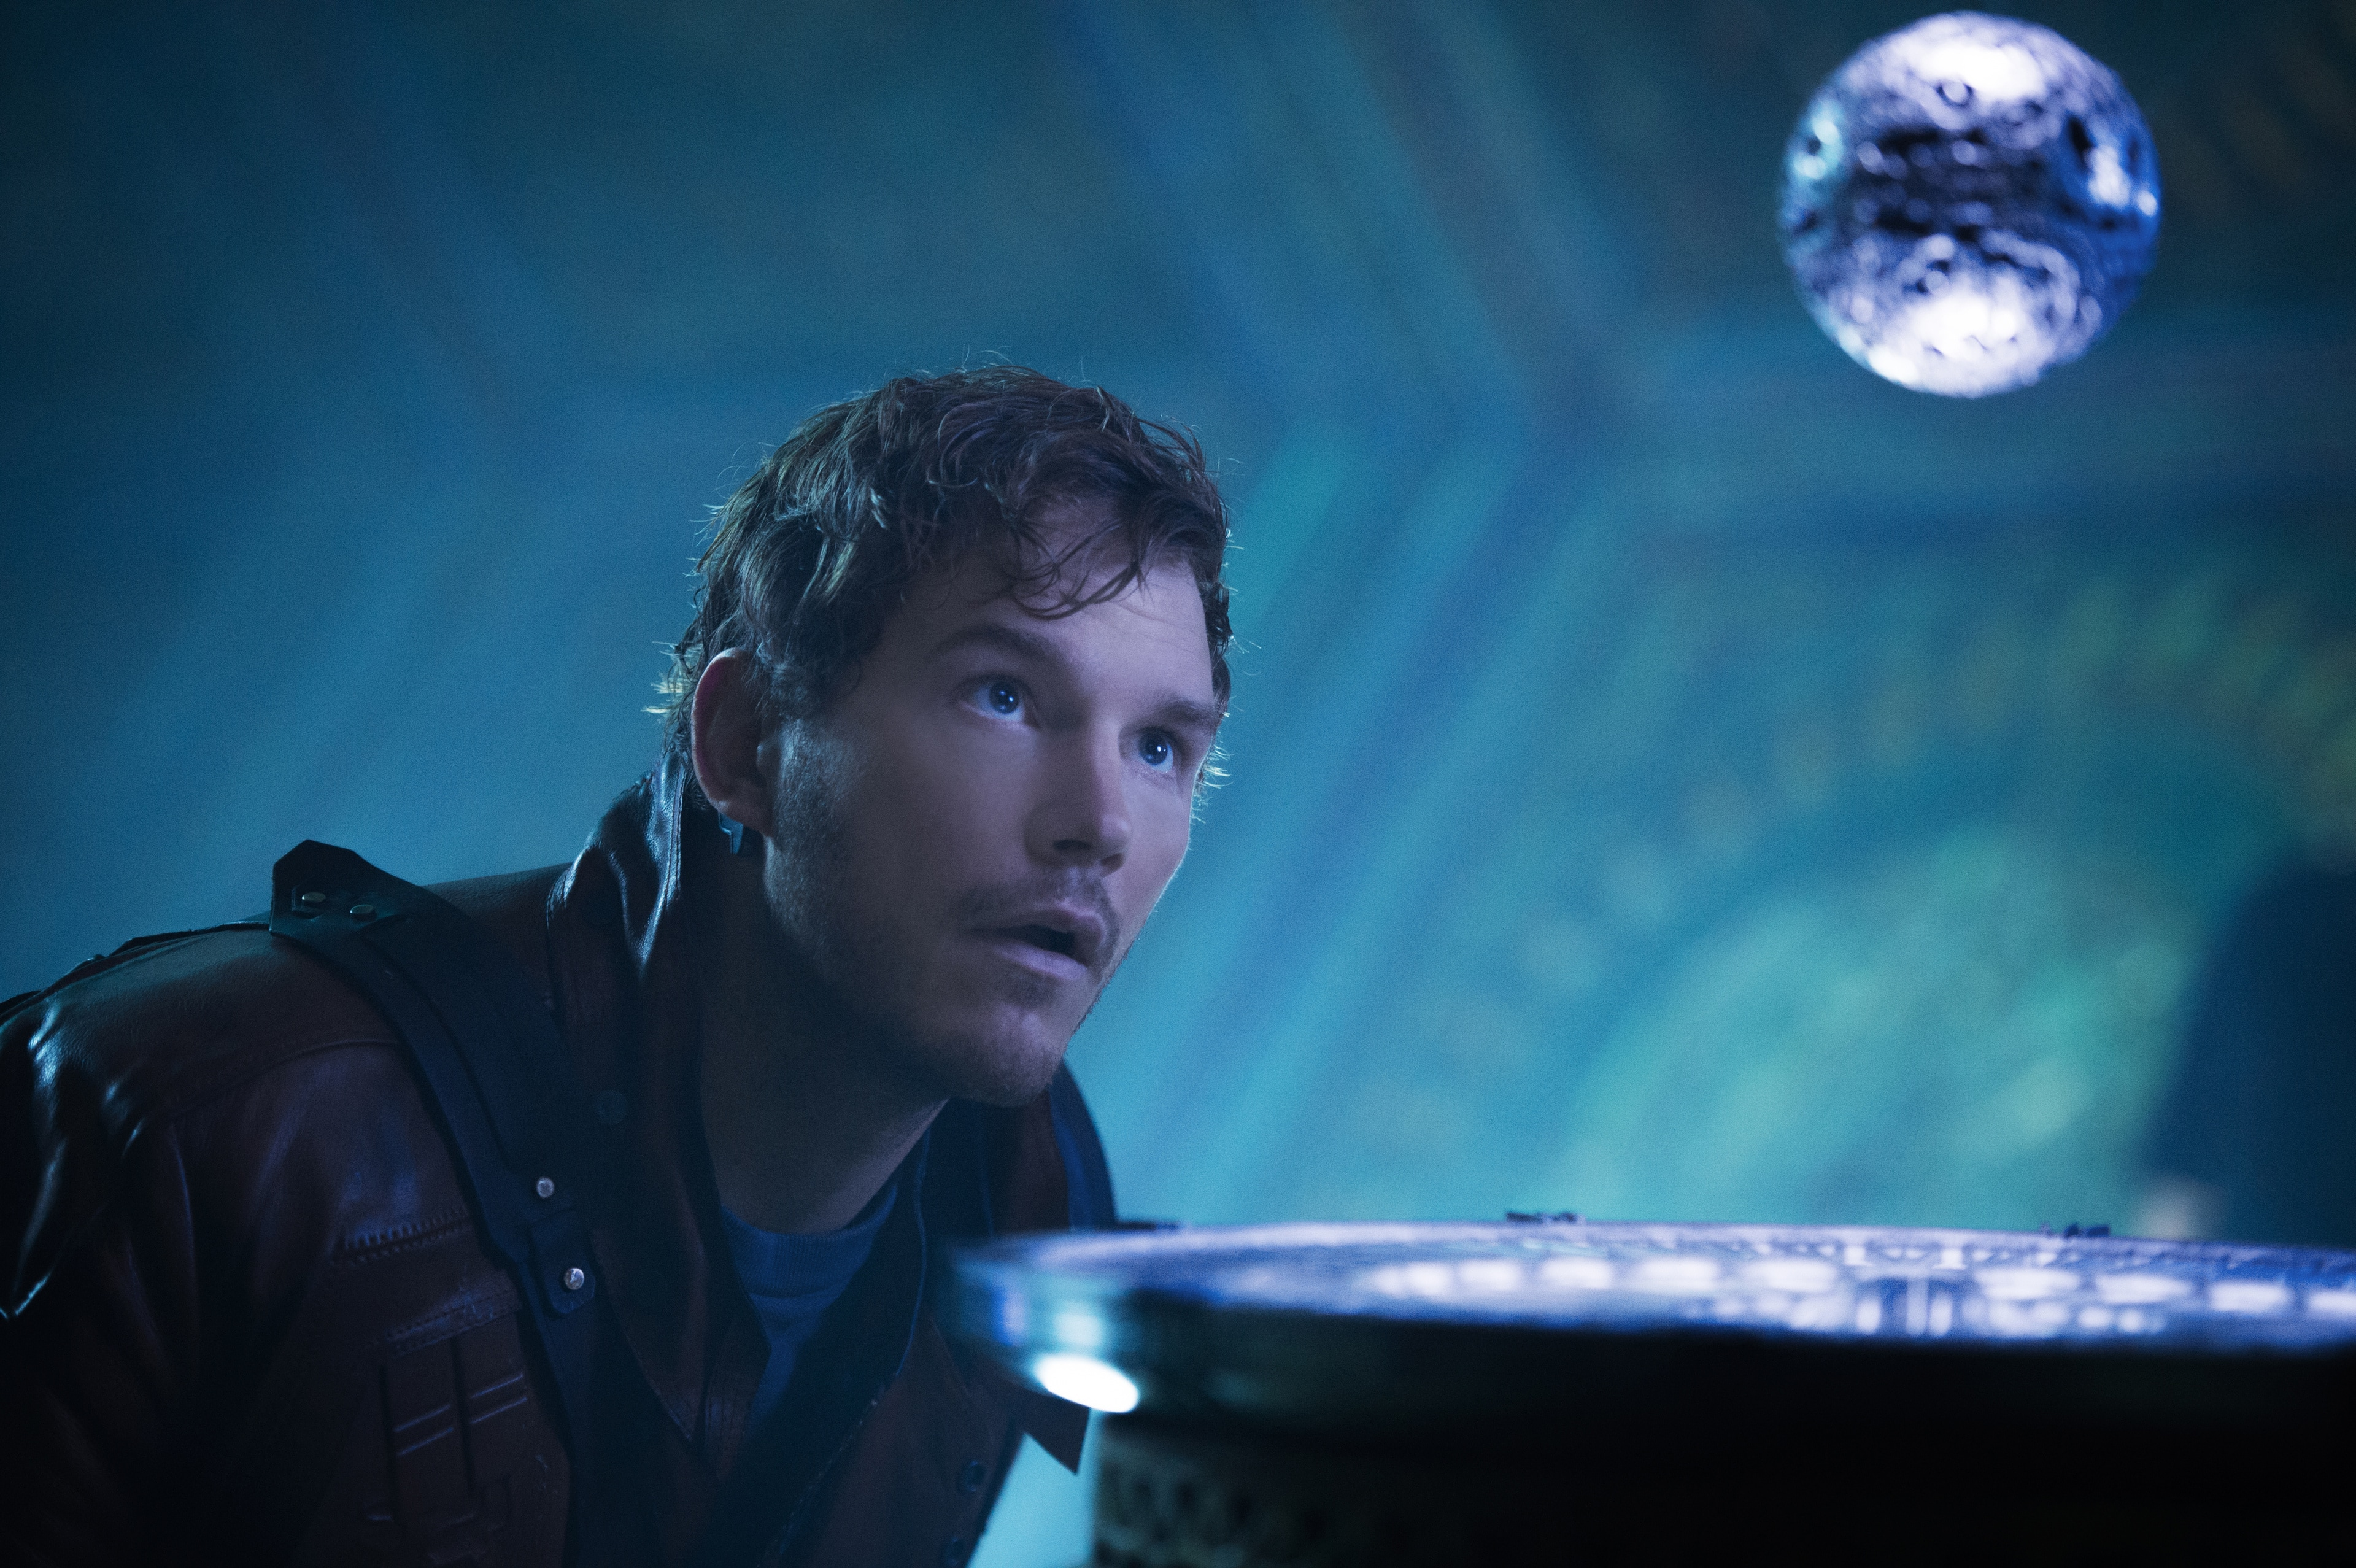 Peter Quill (Starlord) staring at a floating orb